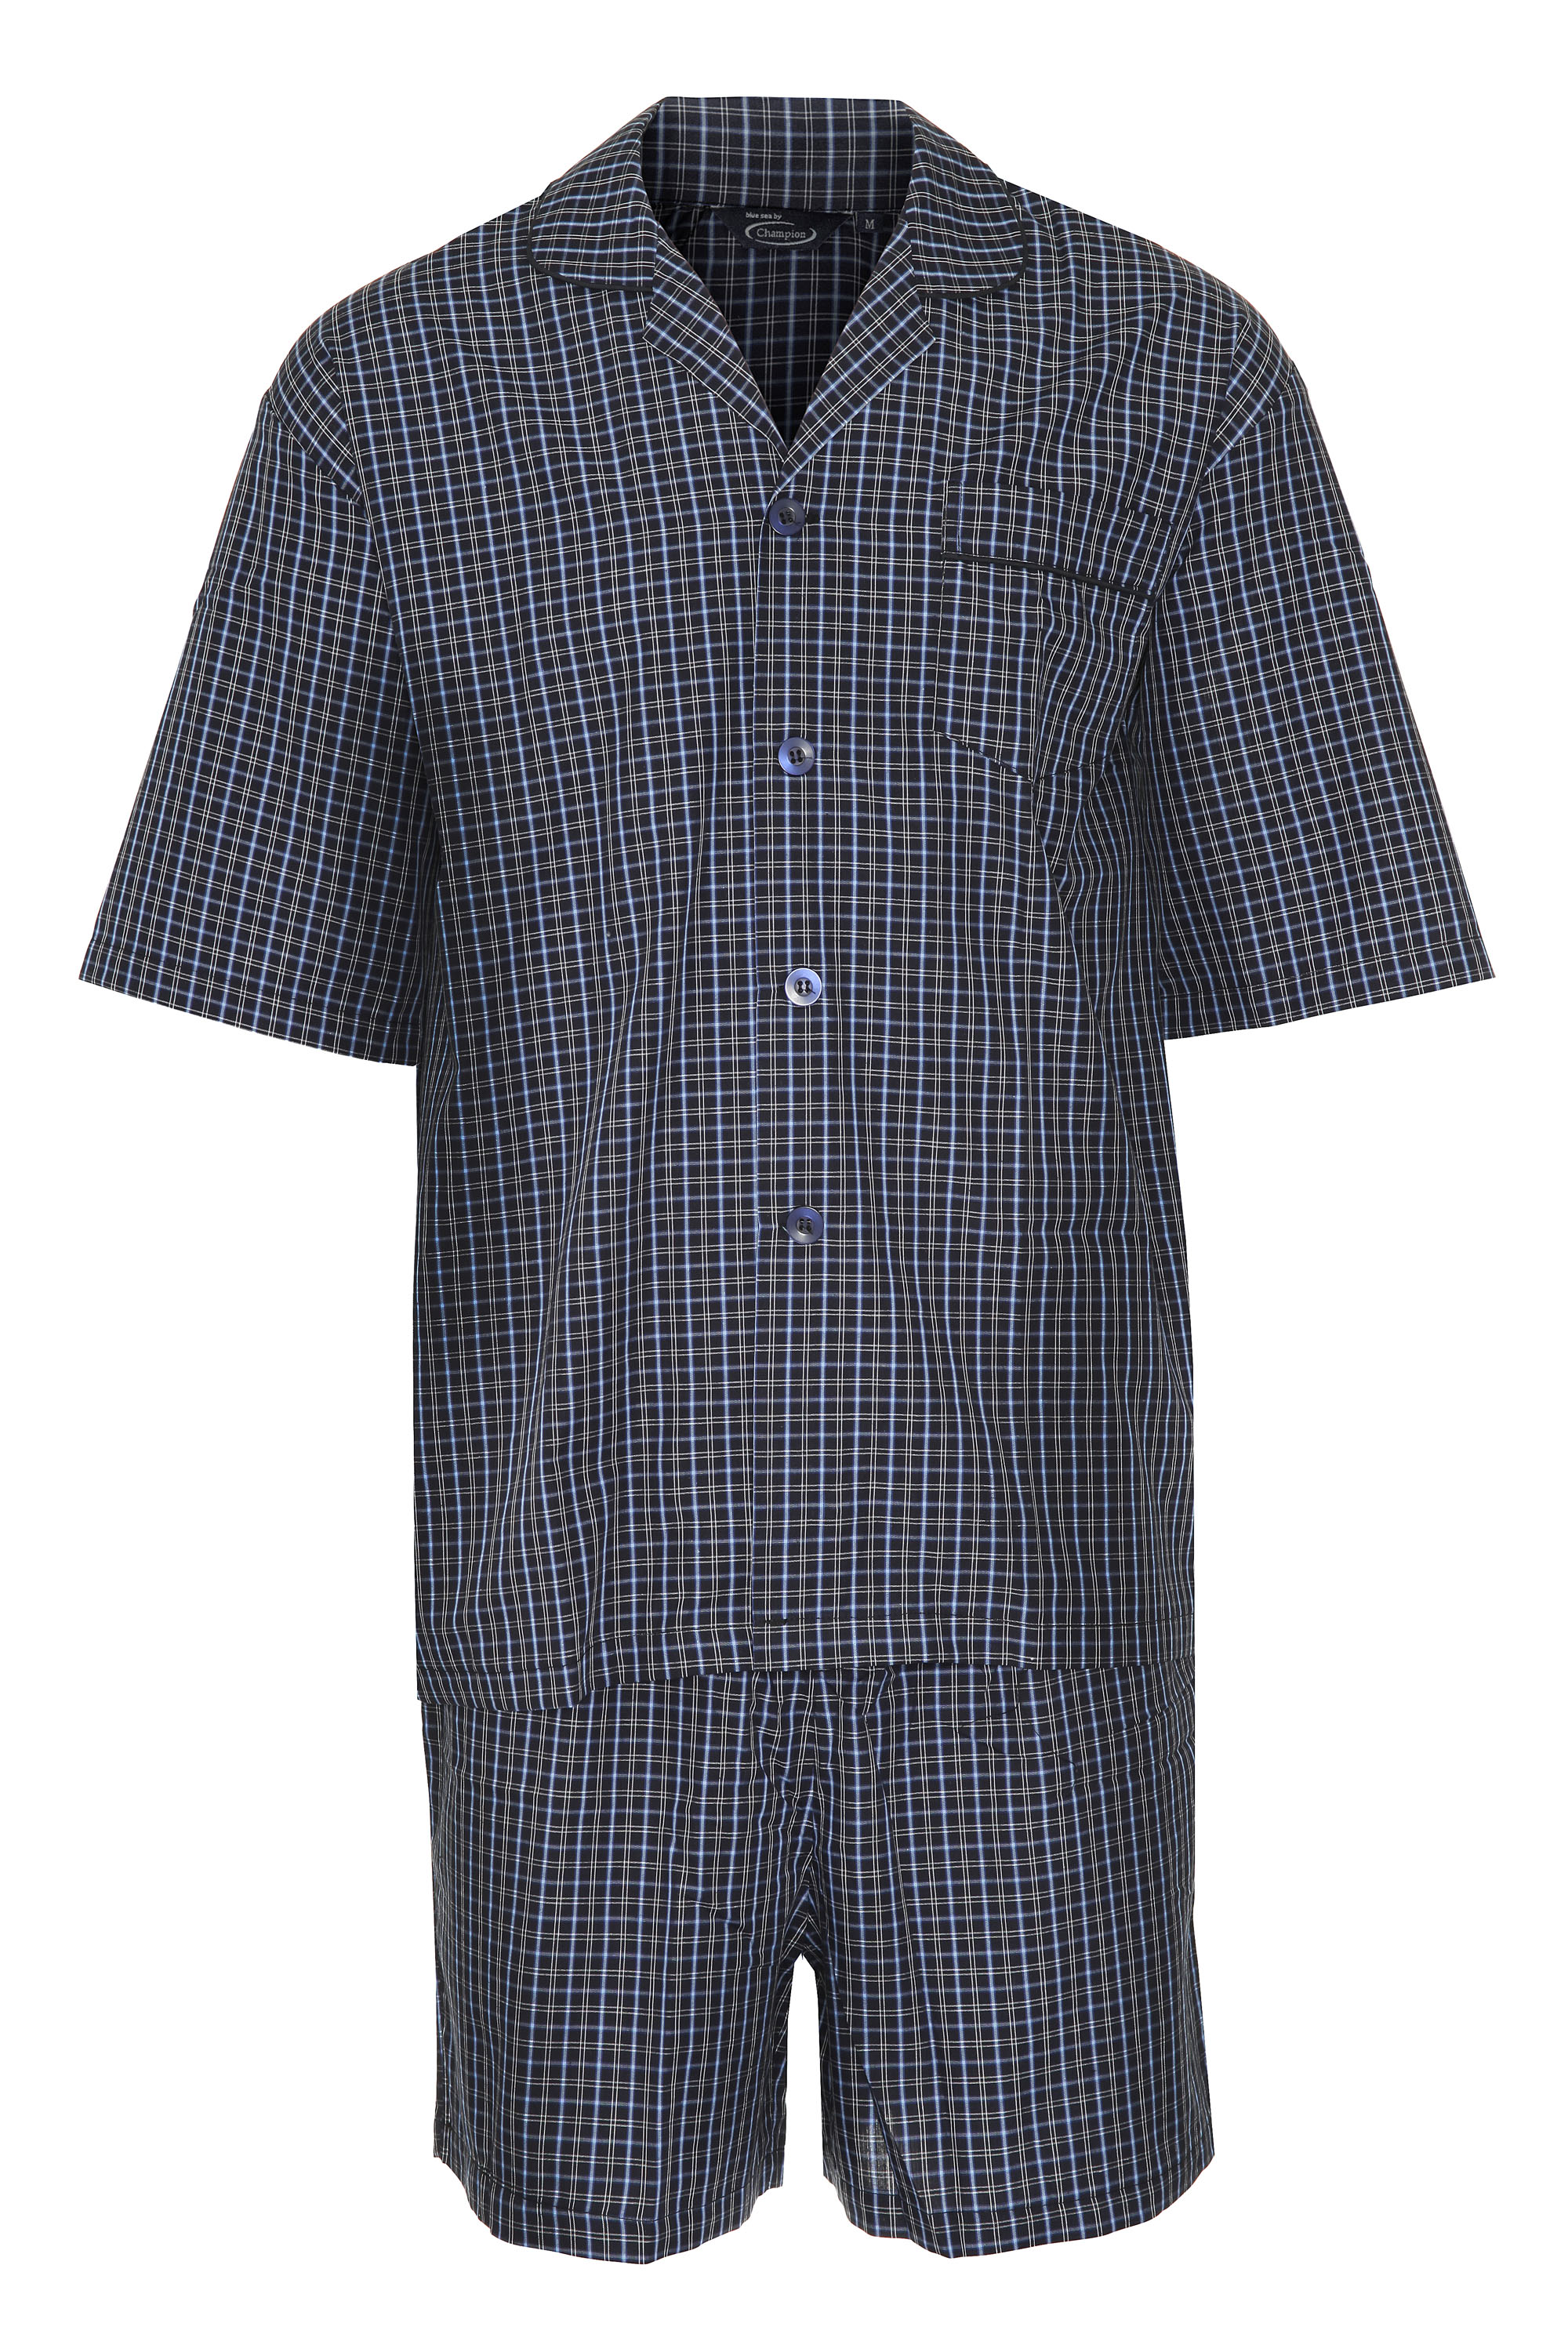 Shop for mens summer pajama sets online at Target. Free shipping on purchases over $35 and save 5% every day with your Target REDcard.